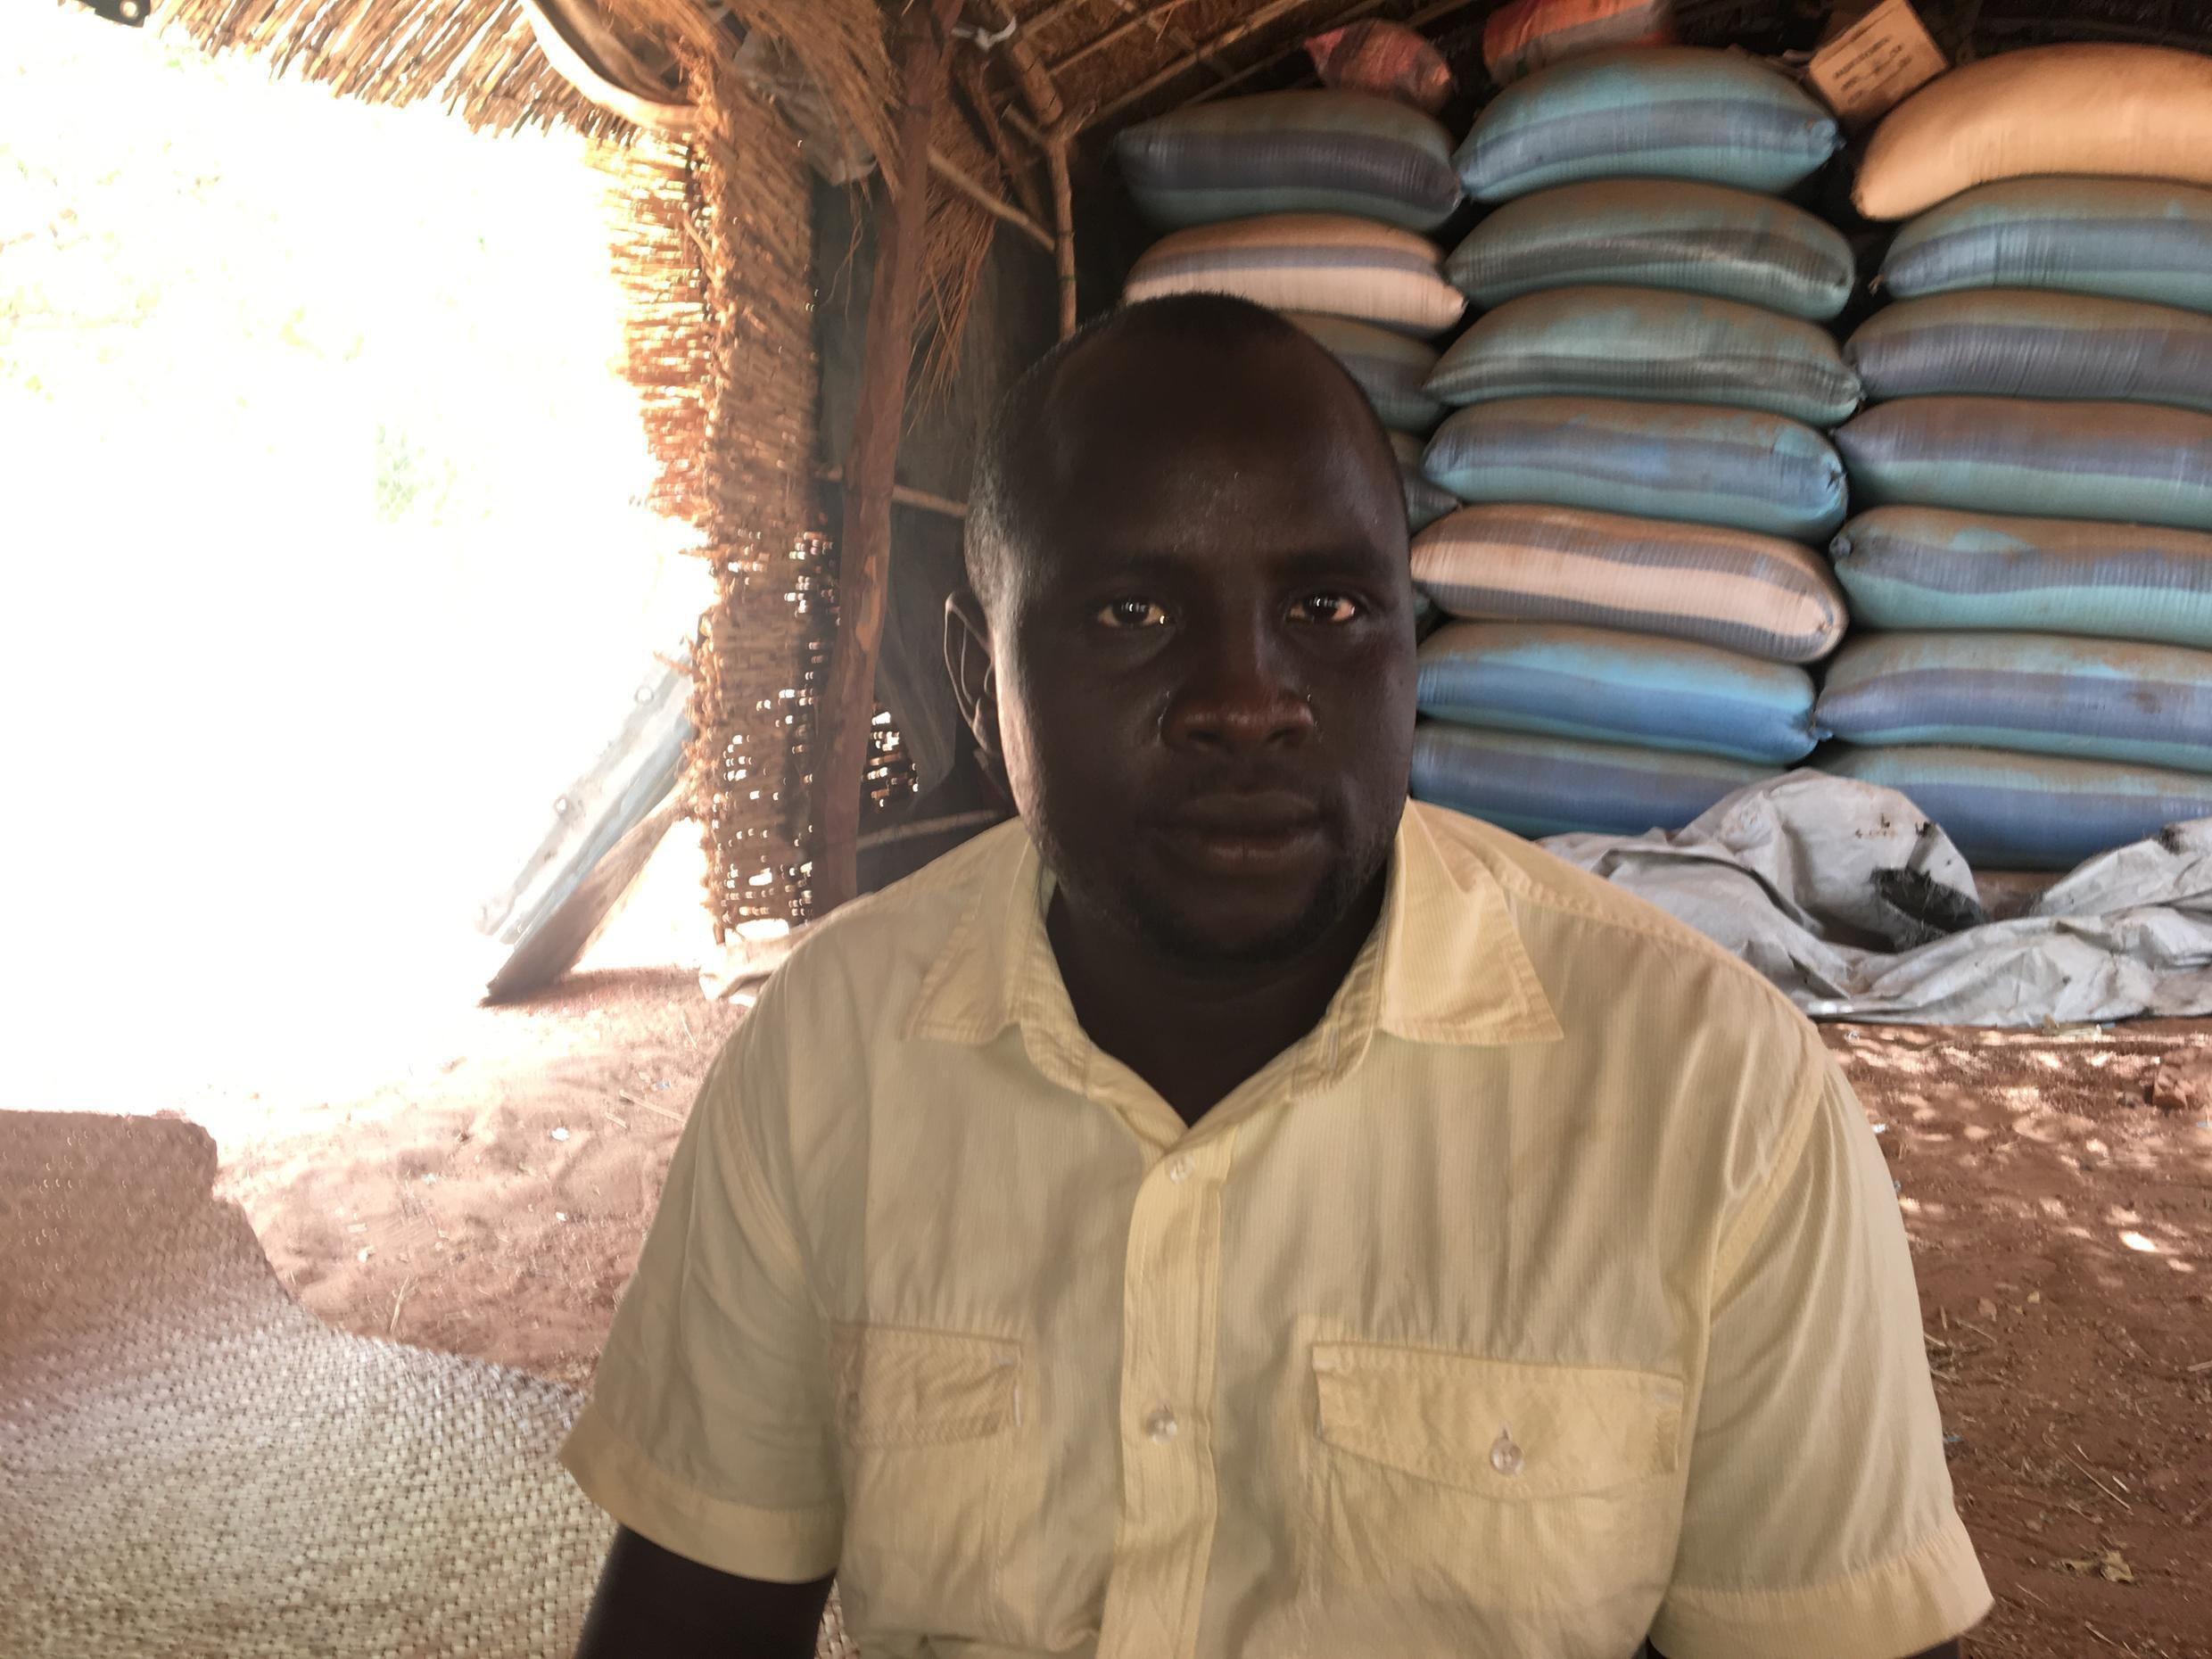 AbdelRachide Issak Hassane, Darfuri refugee who says he was tortured by Sudanese officials after returning from Israel